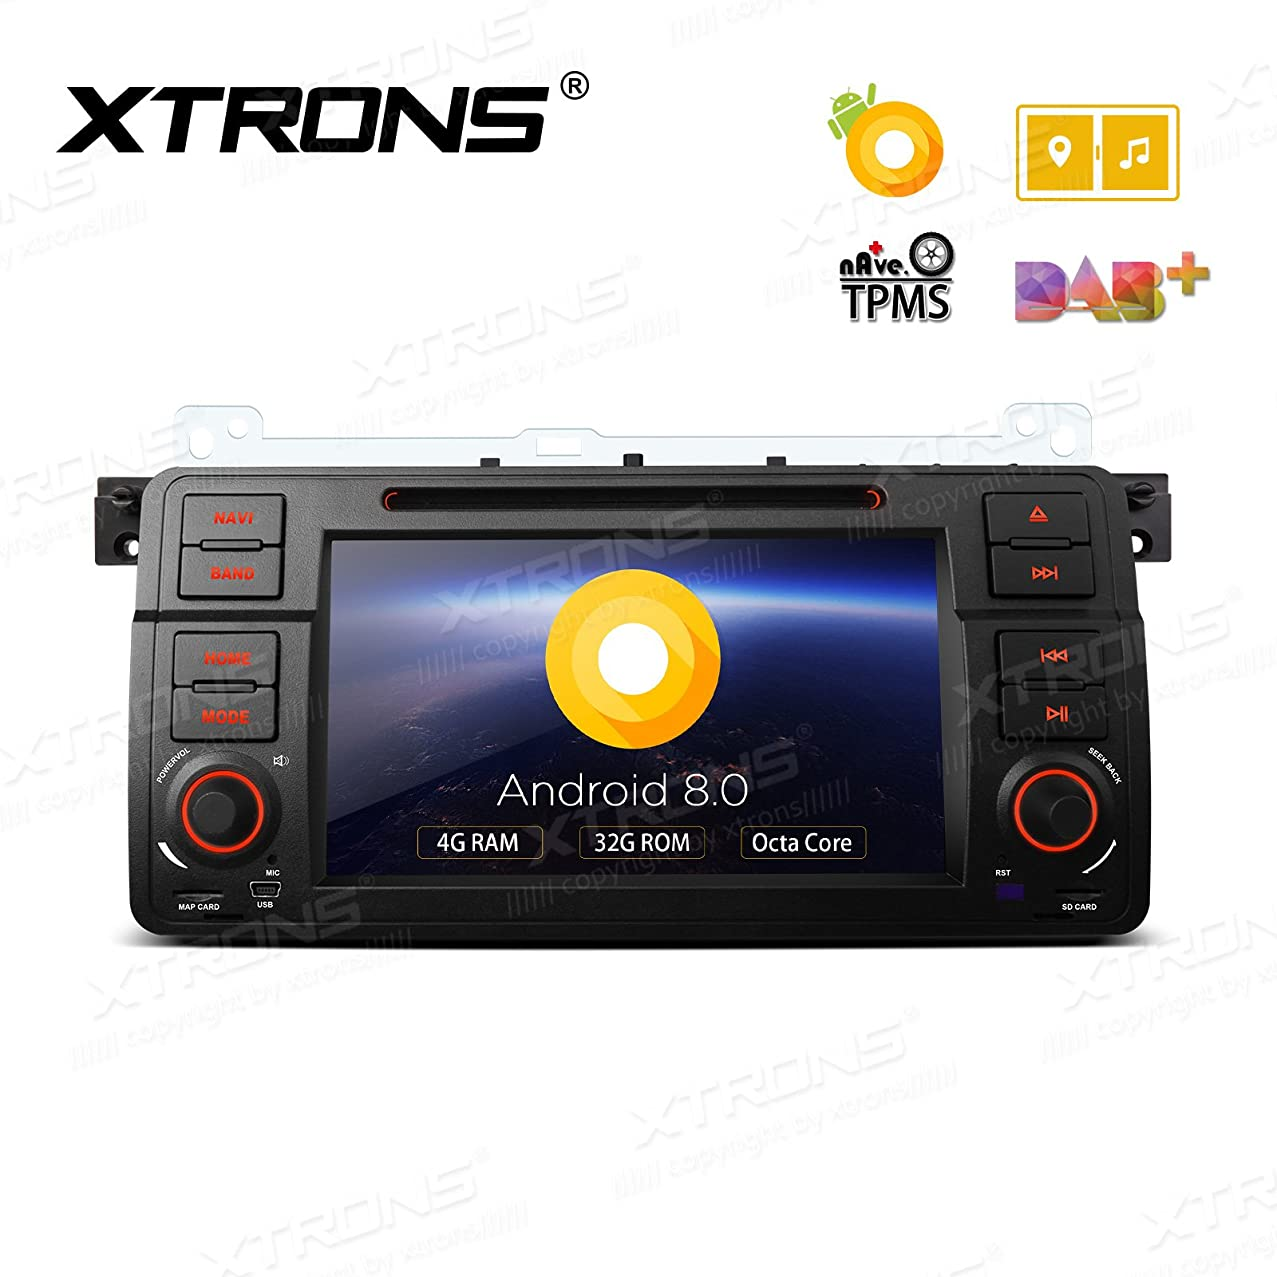 XTRONS 7 inch Android HD Digital Multi-Touch Screen OBD2 DVR Car Stereo DVD Player Tire Pressure Monitoring TPMS for BMW E46 M3 Rover75 (Android 8.0 4+32)